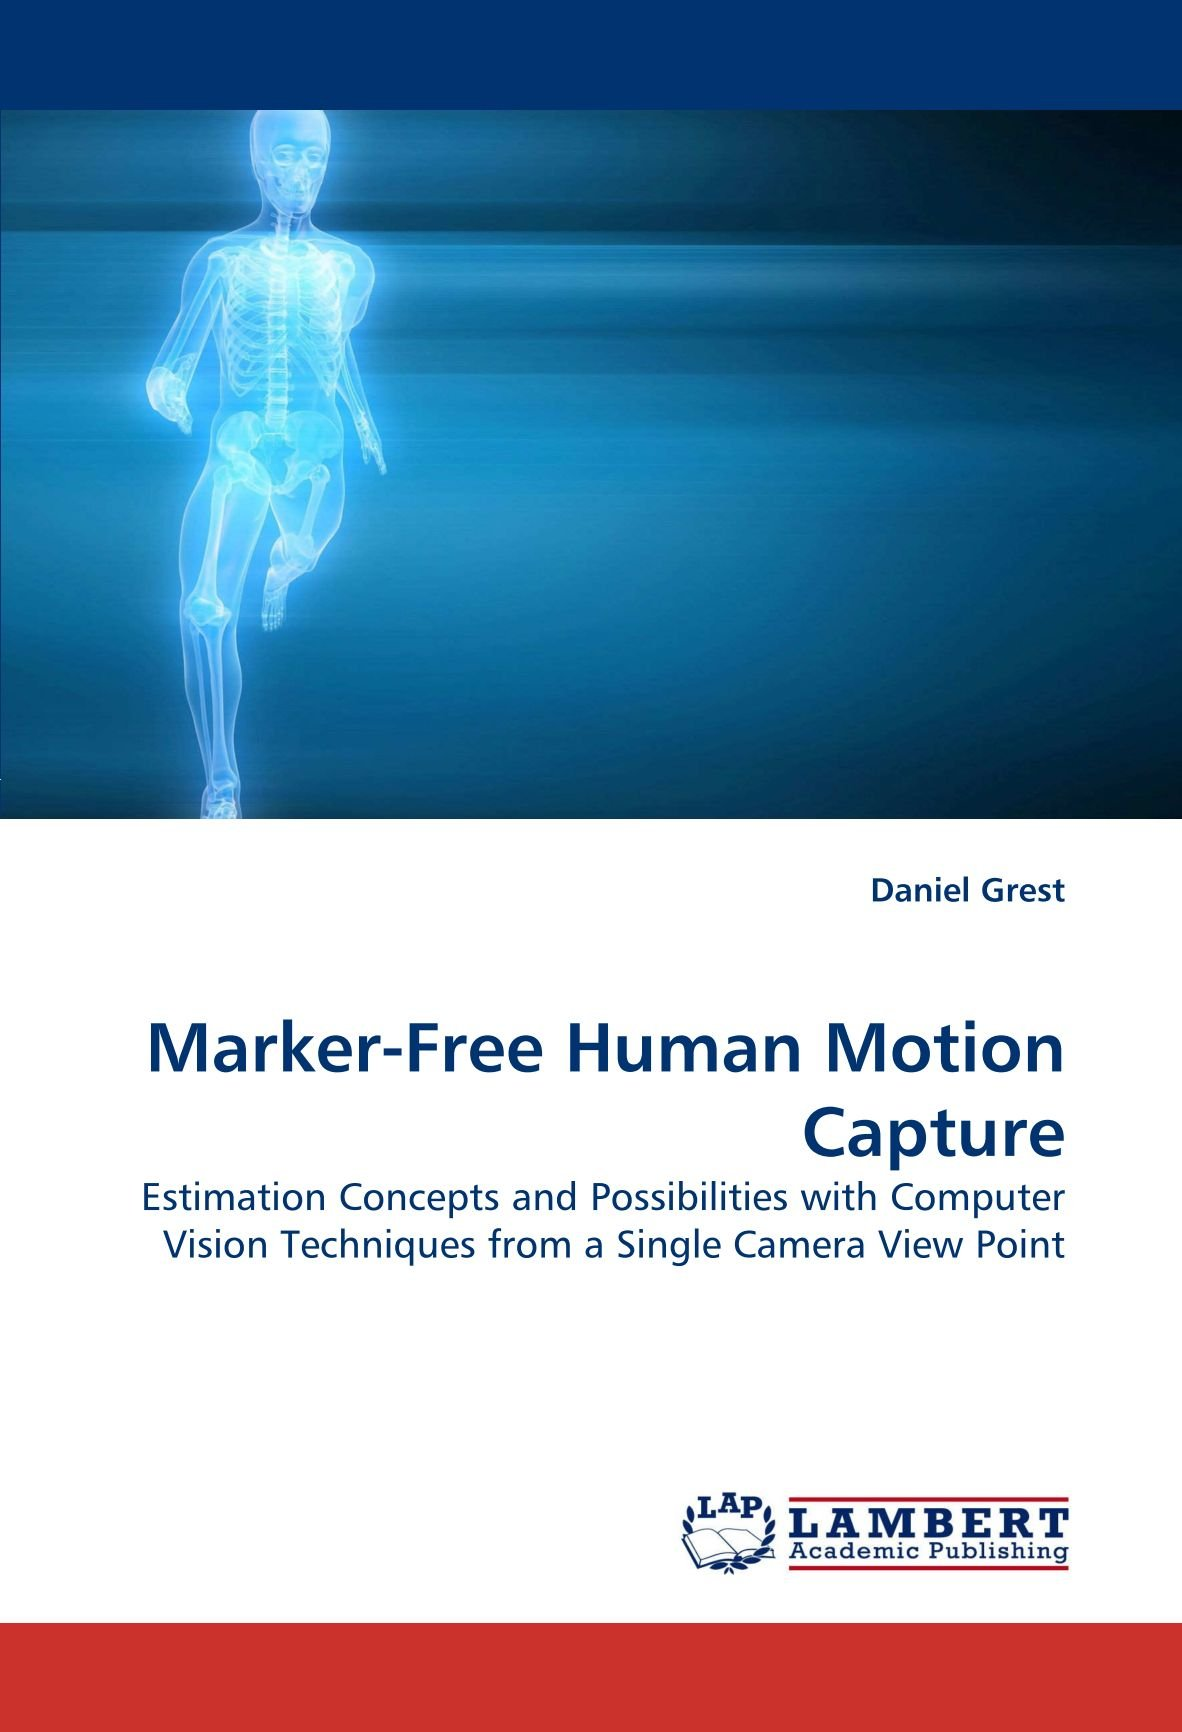 Marker-Free Human Motion Capture: Estimation Concepts and